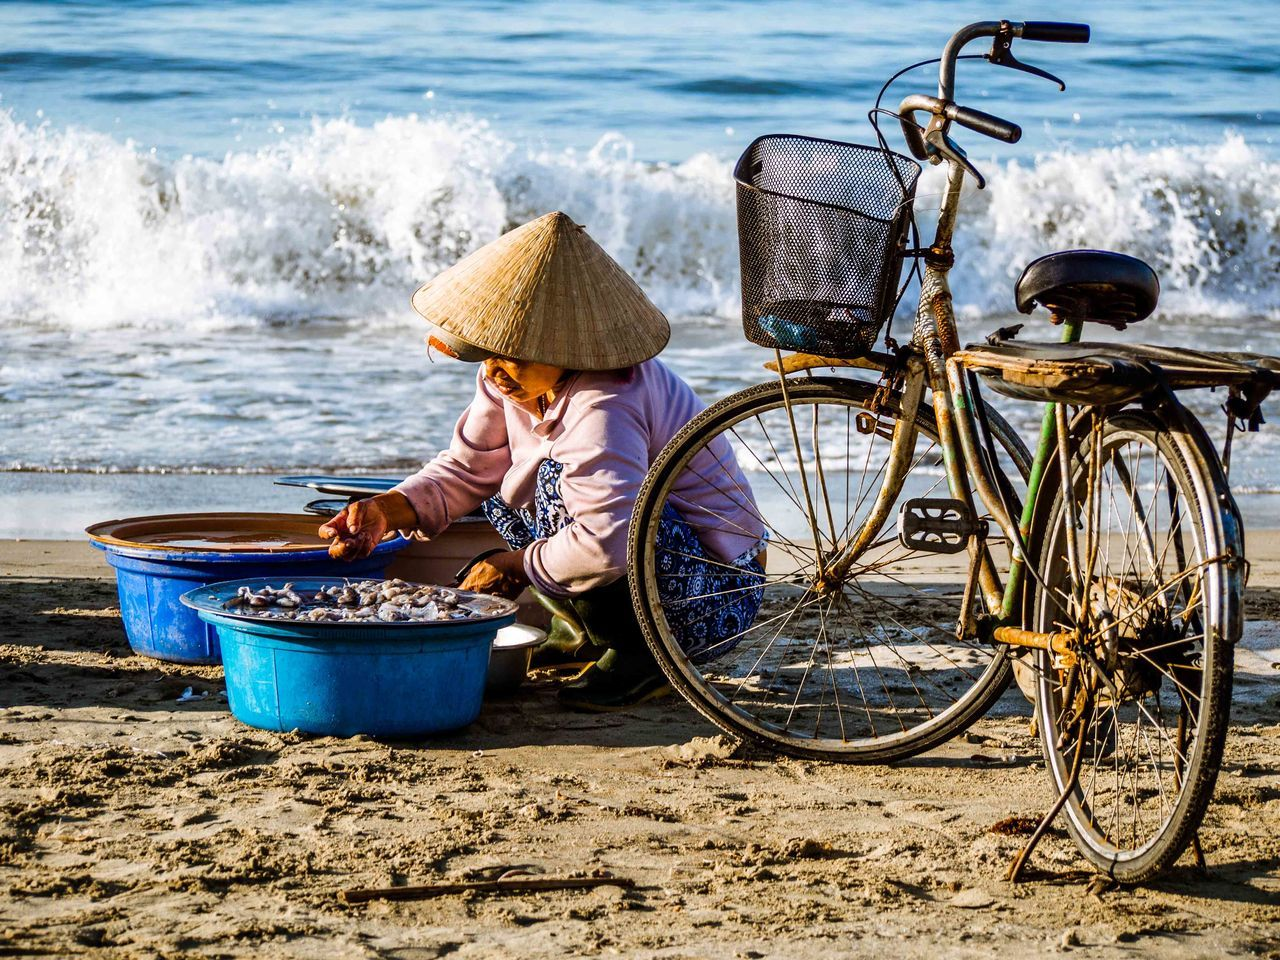 Beautiful stock photos of fahrrad, sea, one person, bicycle, mode of transport